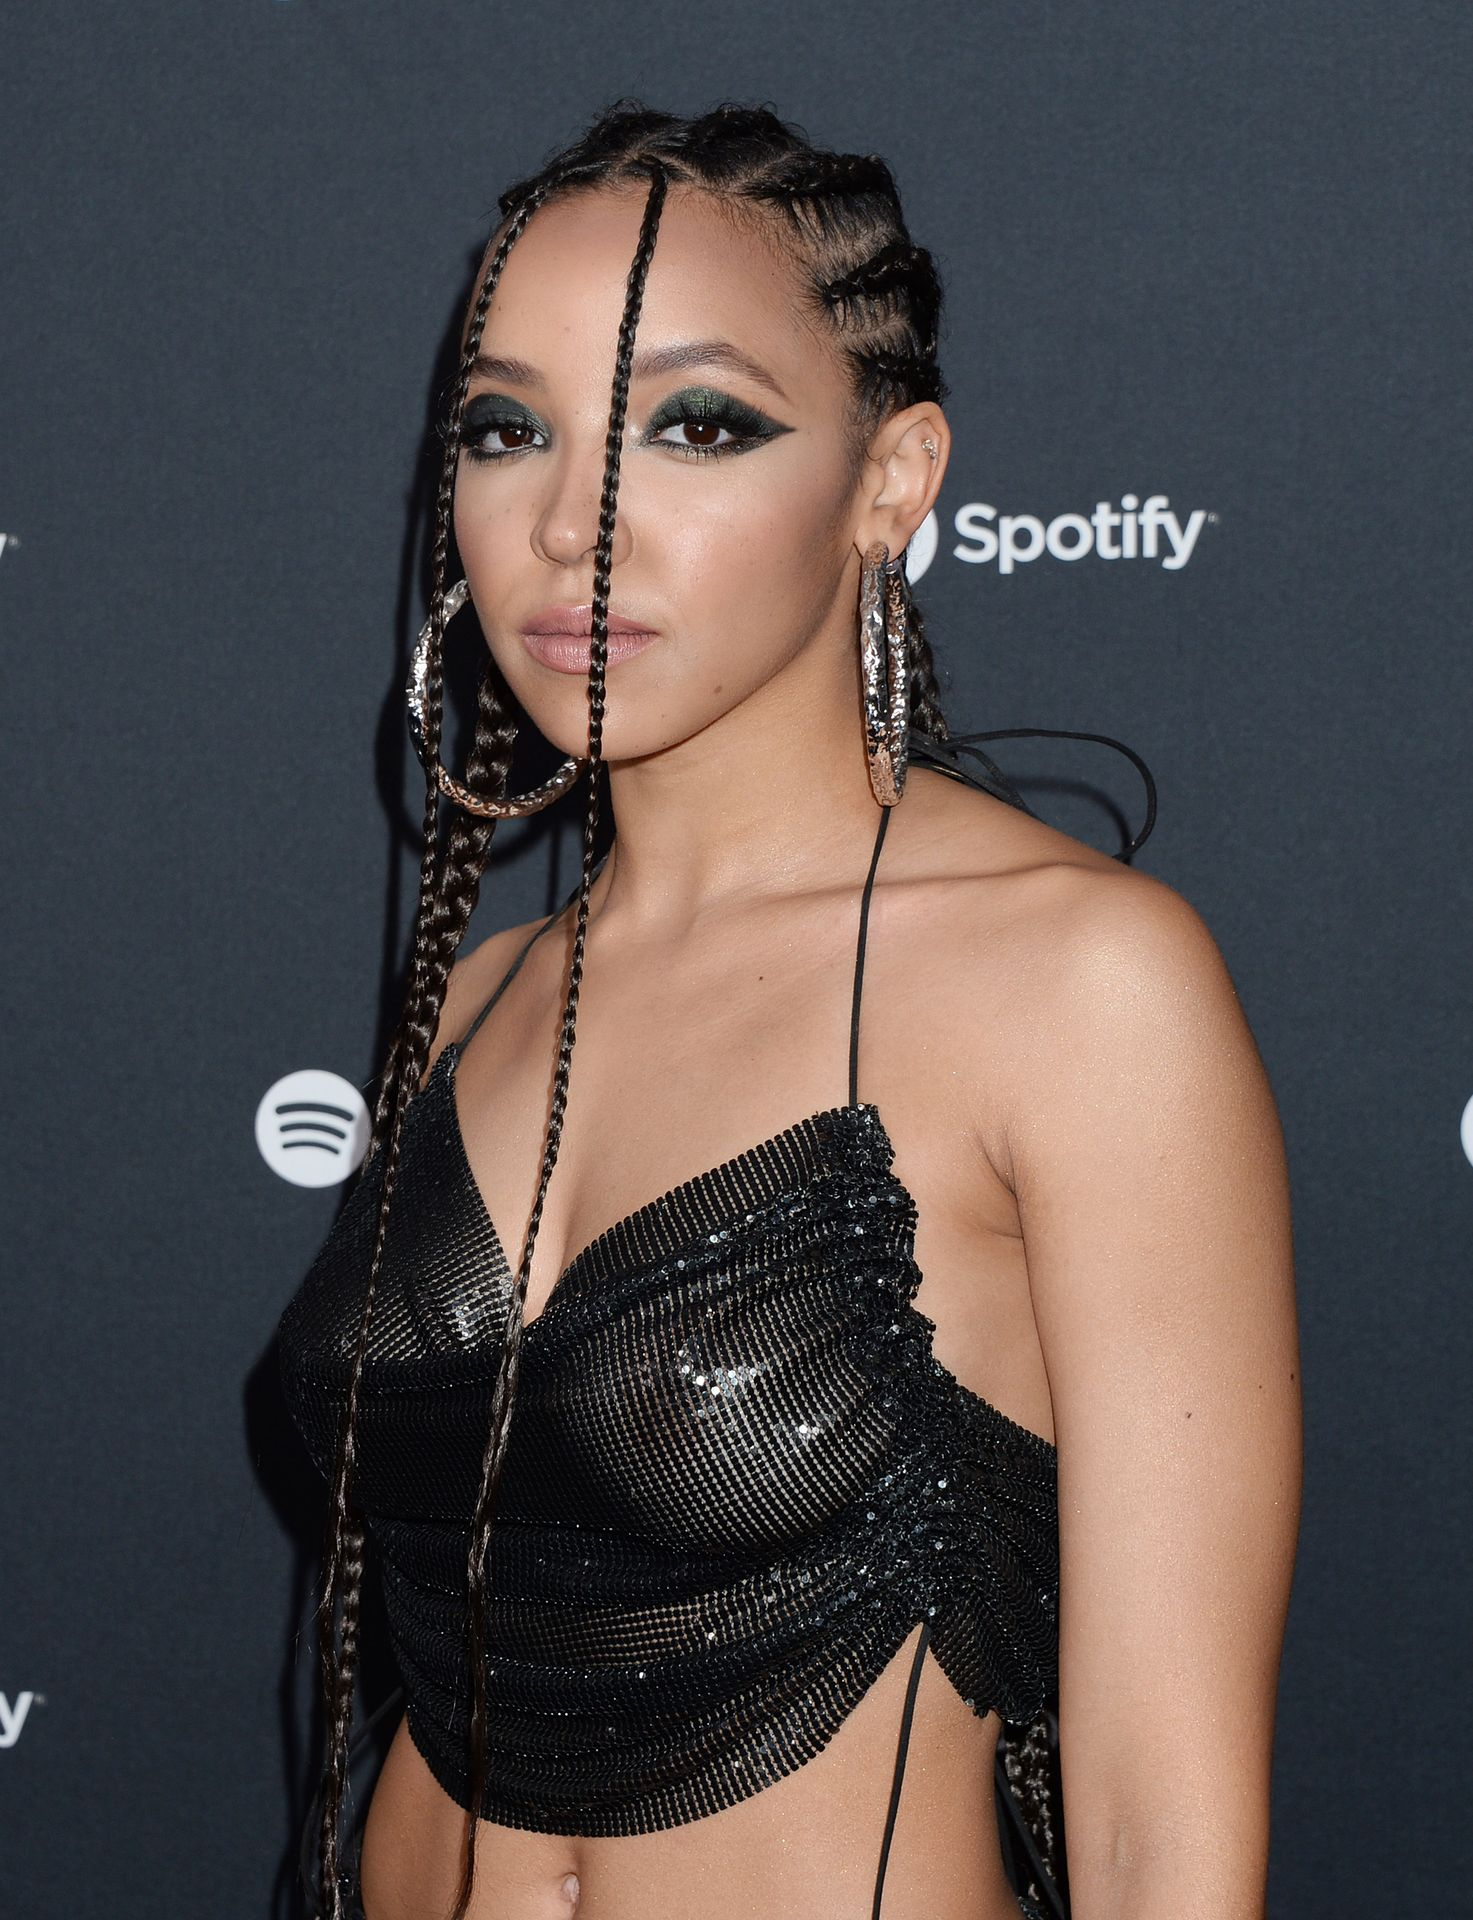 Tinashe Flaunts Her Tits At The Spotify Best New Artist Party 0007